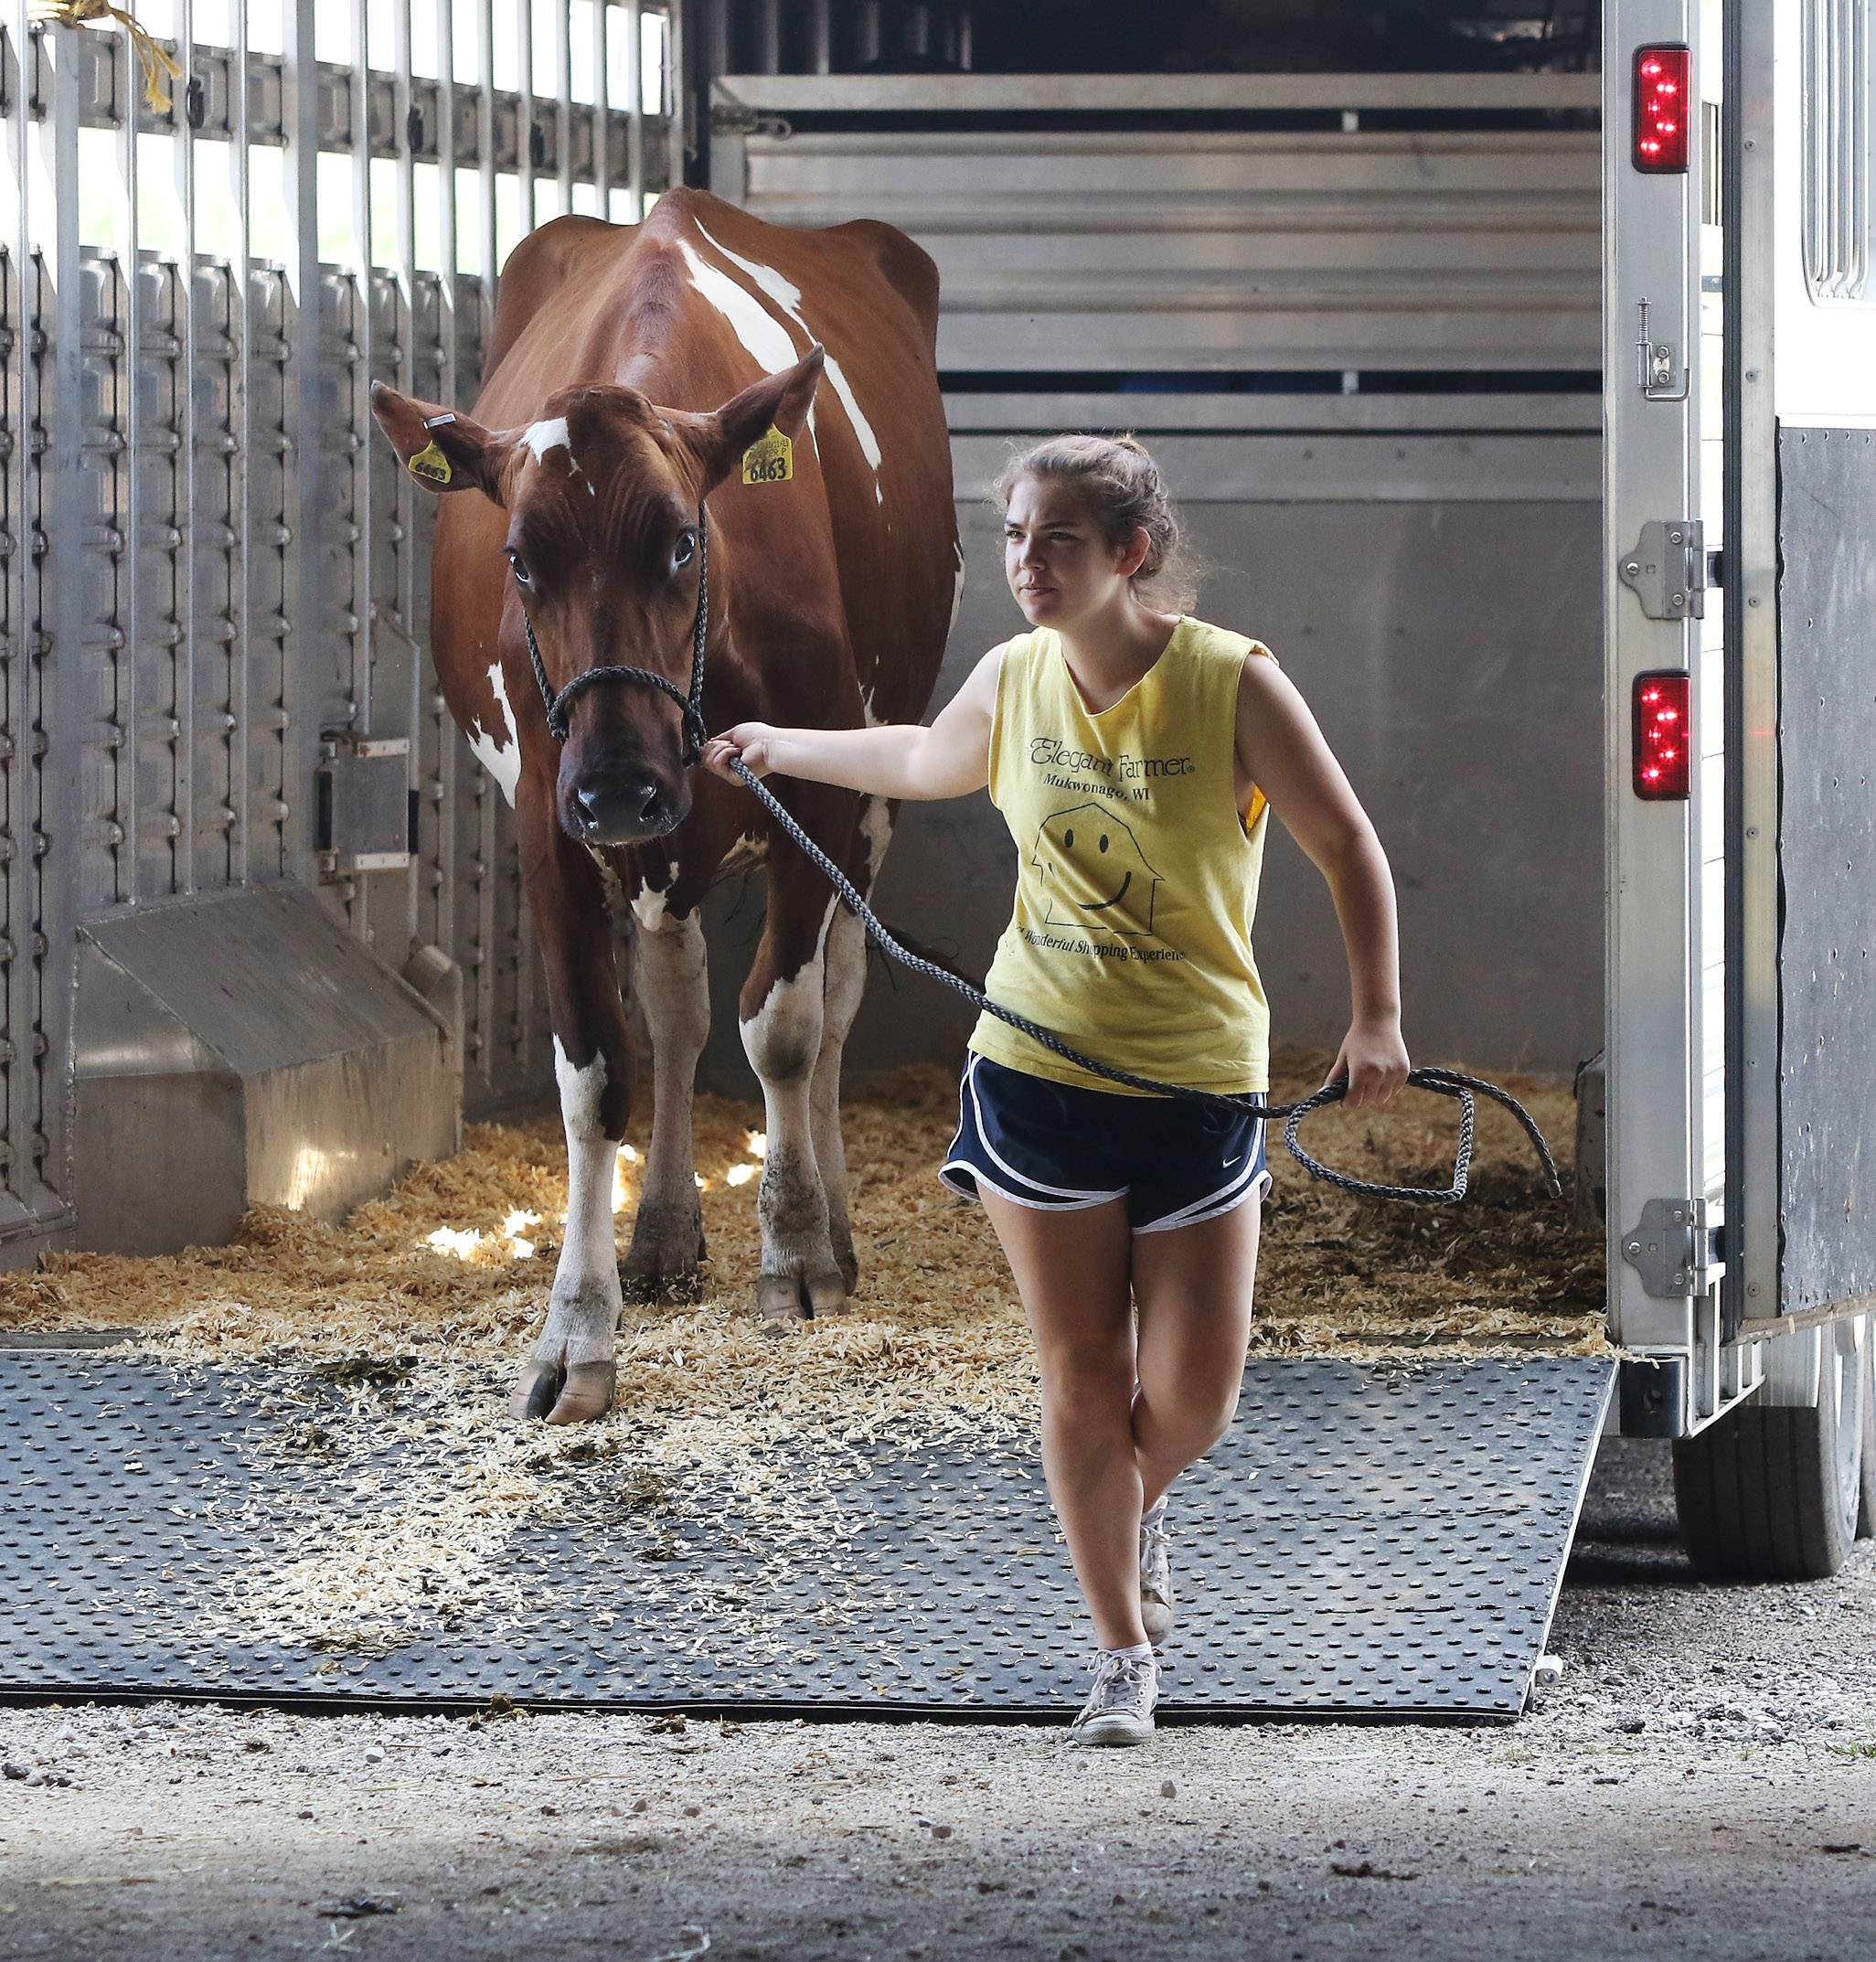 Jessica Wittenstein, 16, of the Glenview Clovers 4-H Club unloads a Holstein cow Tuesday for the Lake County Fair. The fair runs Wednesday through Sunday at the Lake County Fairgrounds in Grayslake.